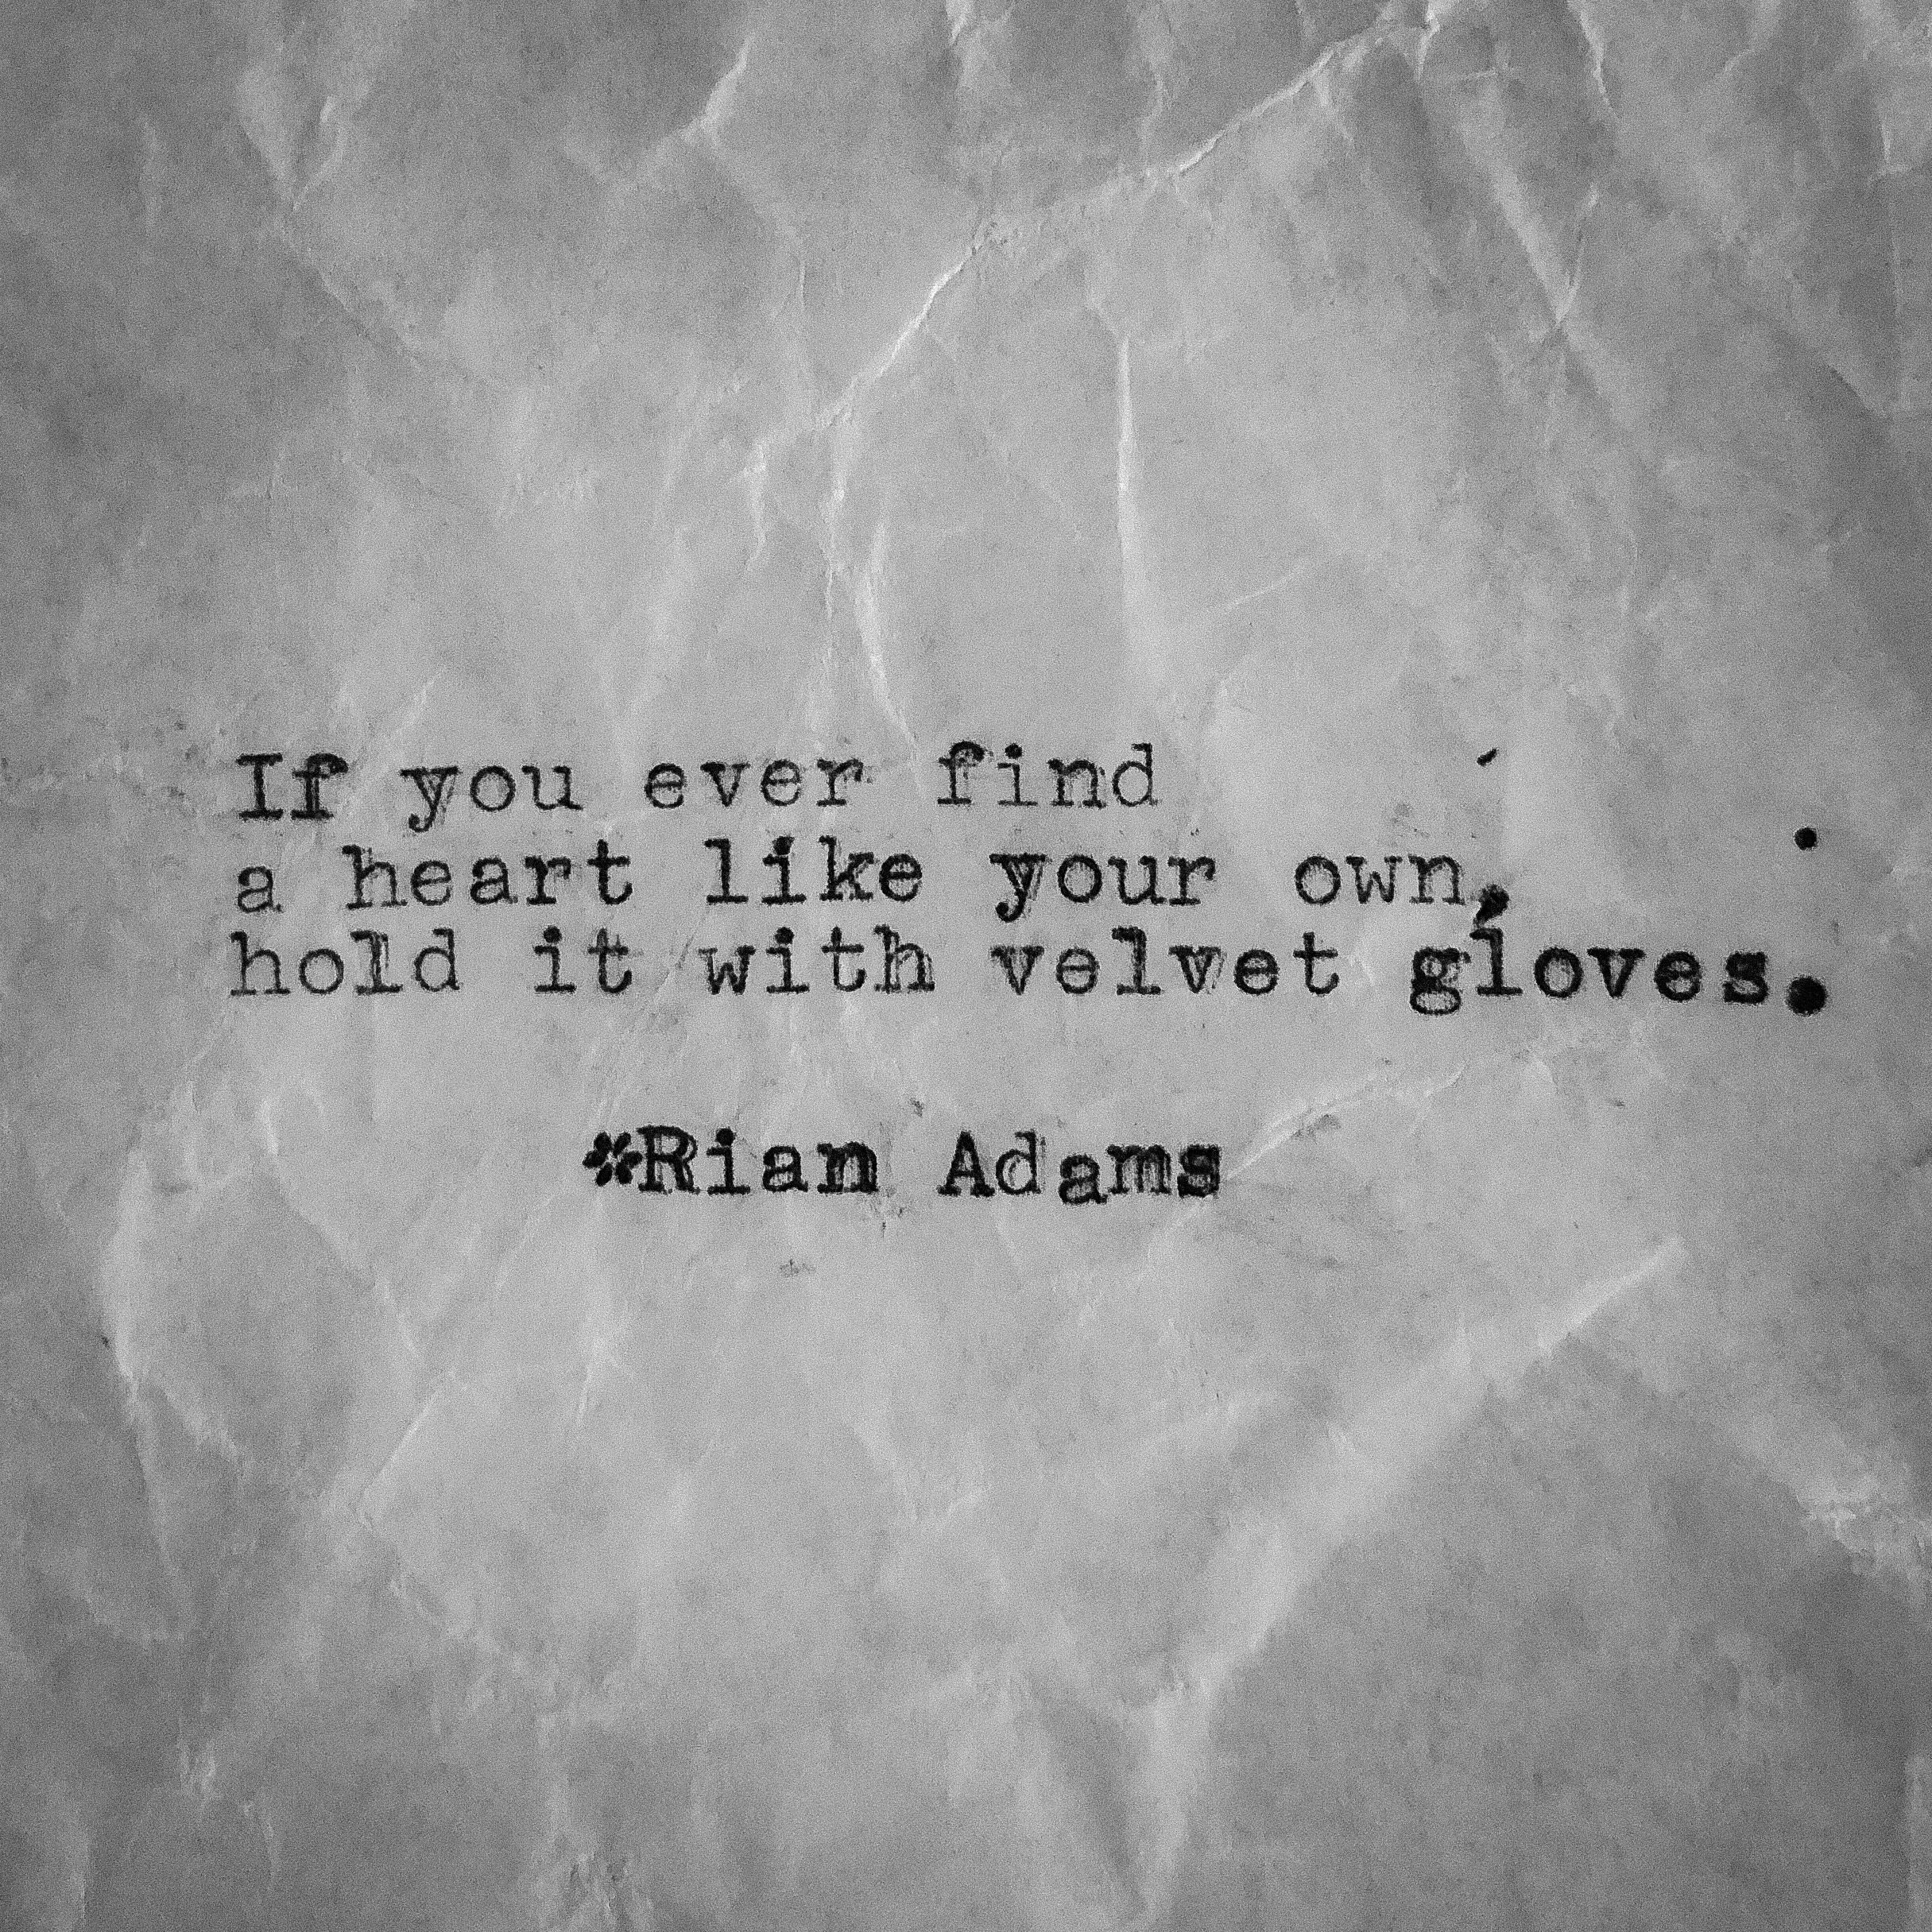 Pin by Rian Adams on Personal Poetry of Rian Adams